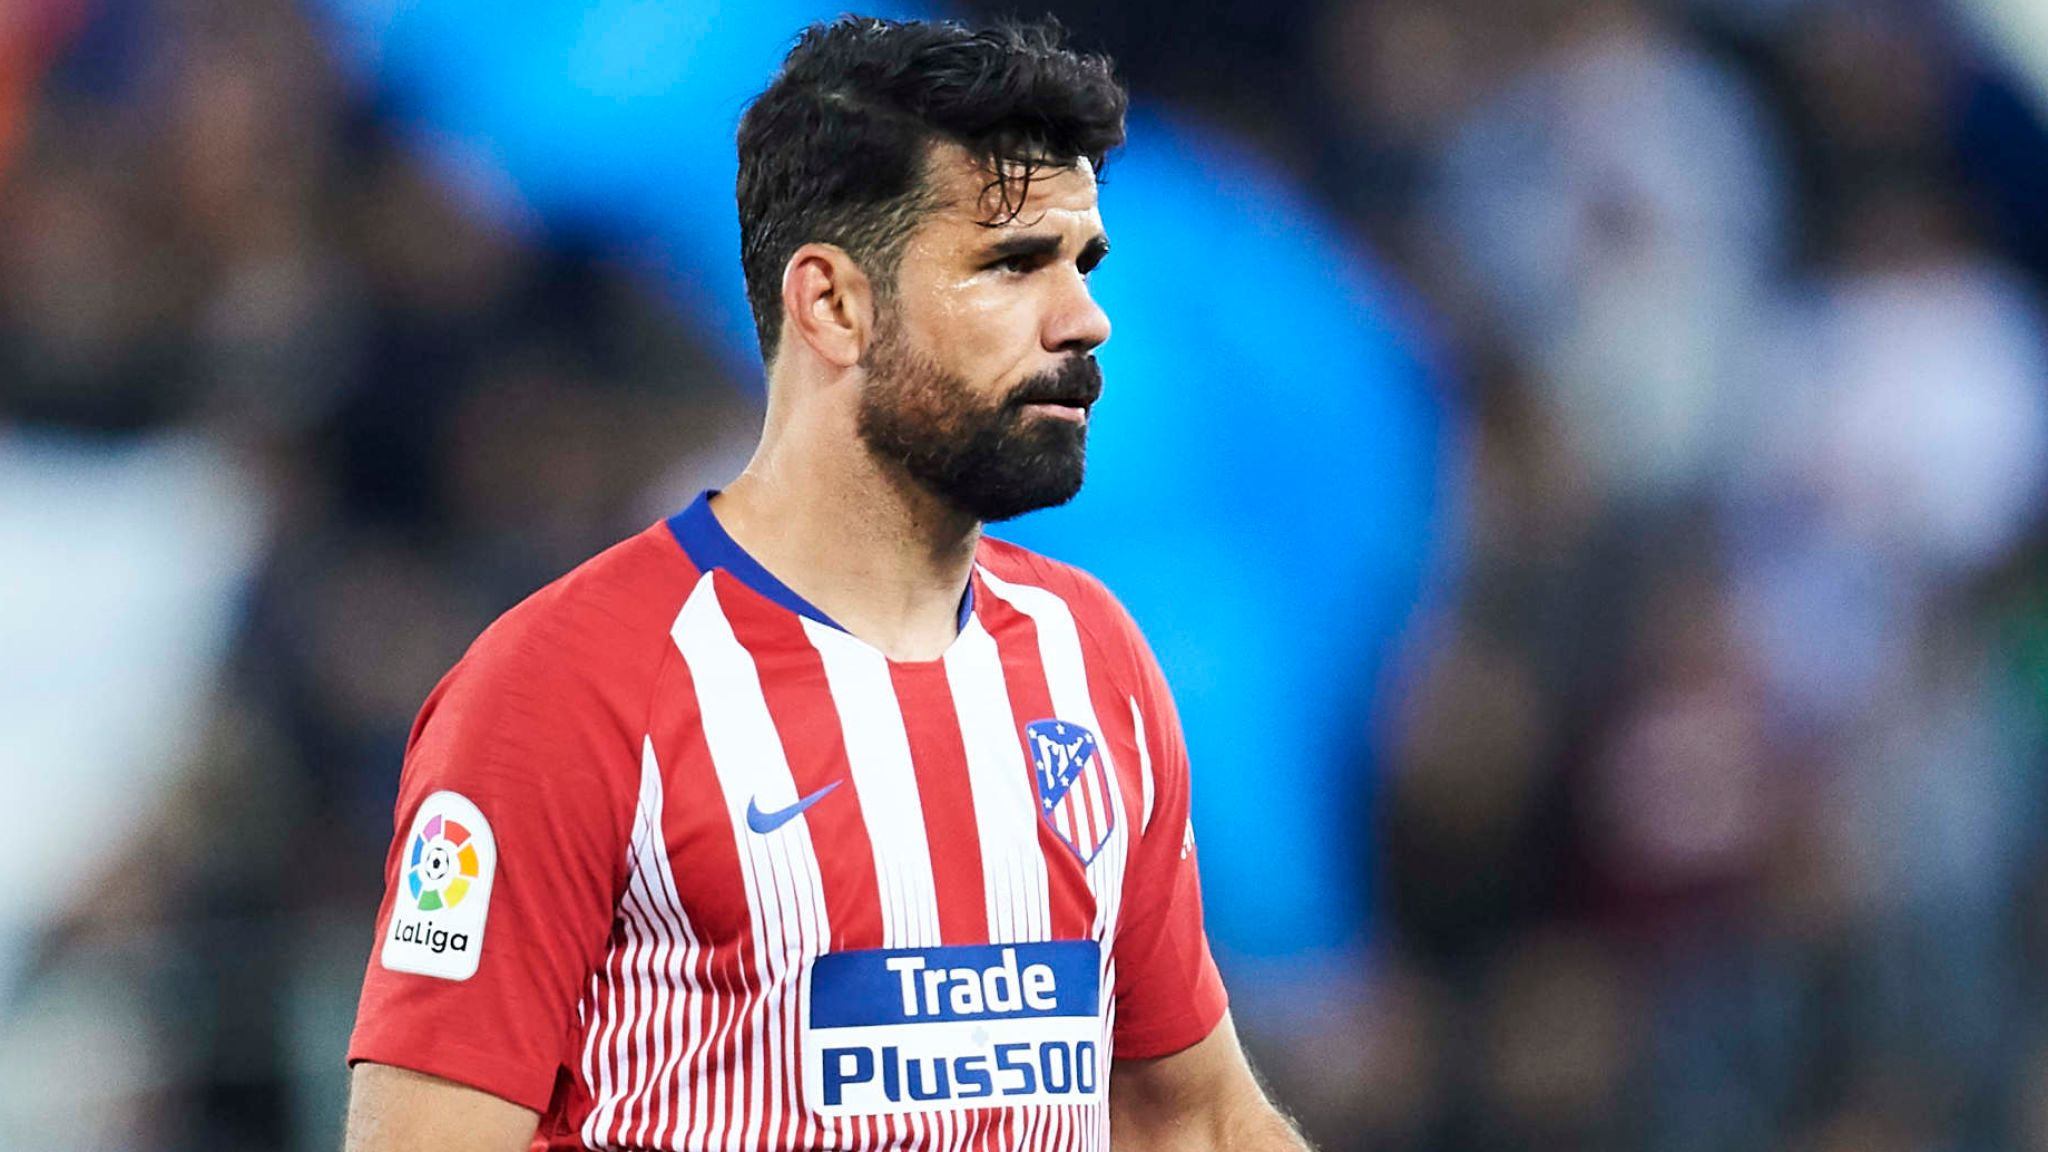 EPL: 3 Premier League clubs told to sign Diego Costa